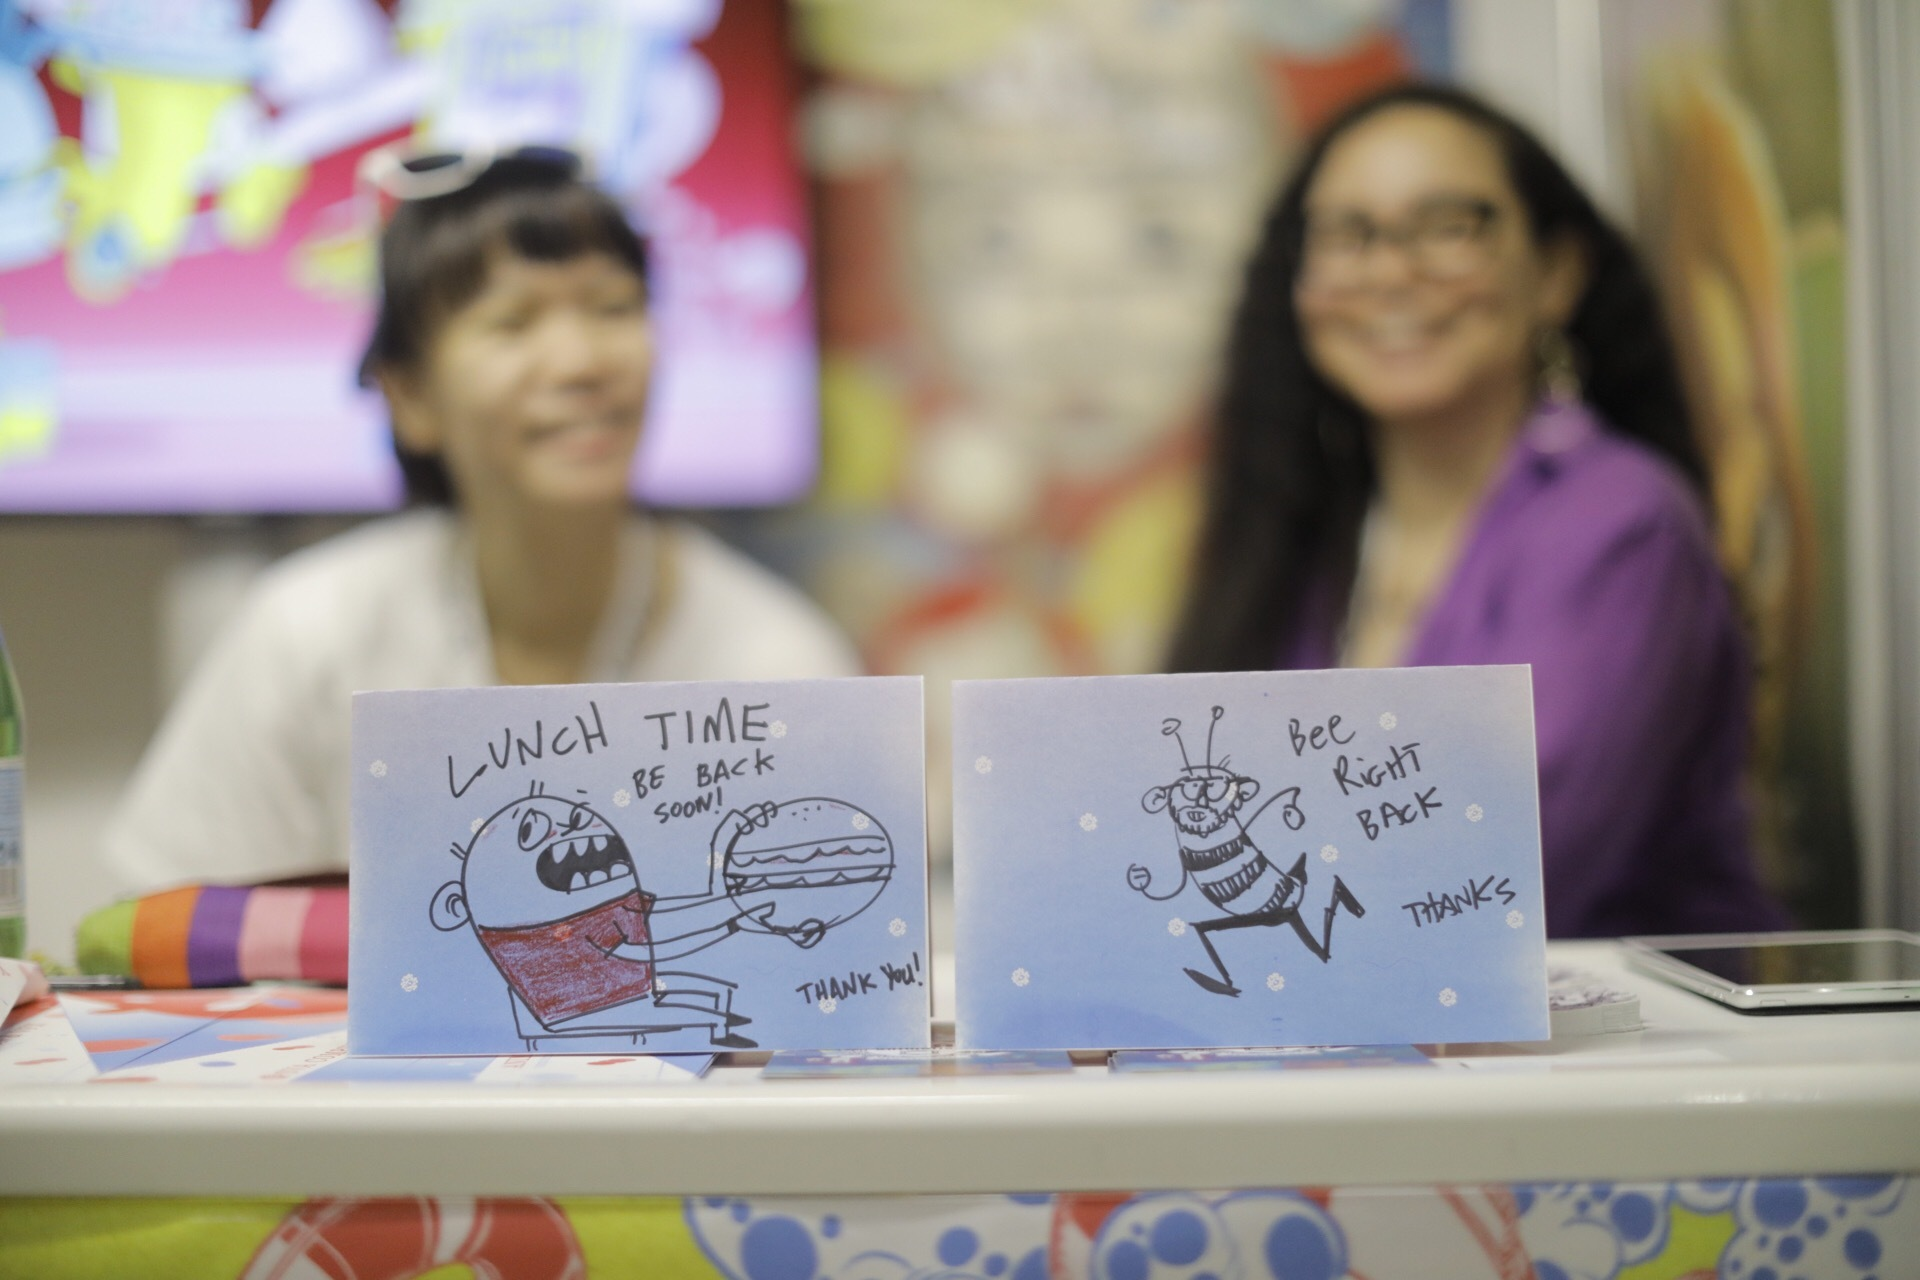 """A photograph of two hand-drawn """"Be back soon""""-type signs propped on a table."""